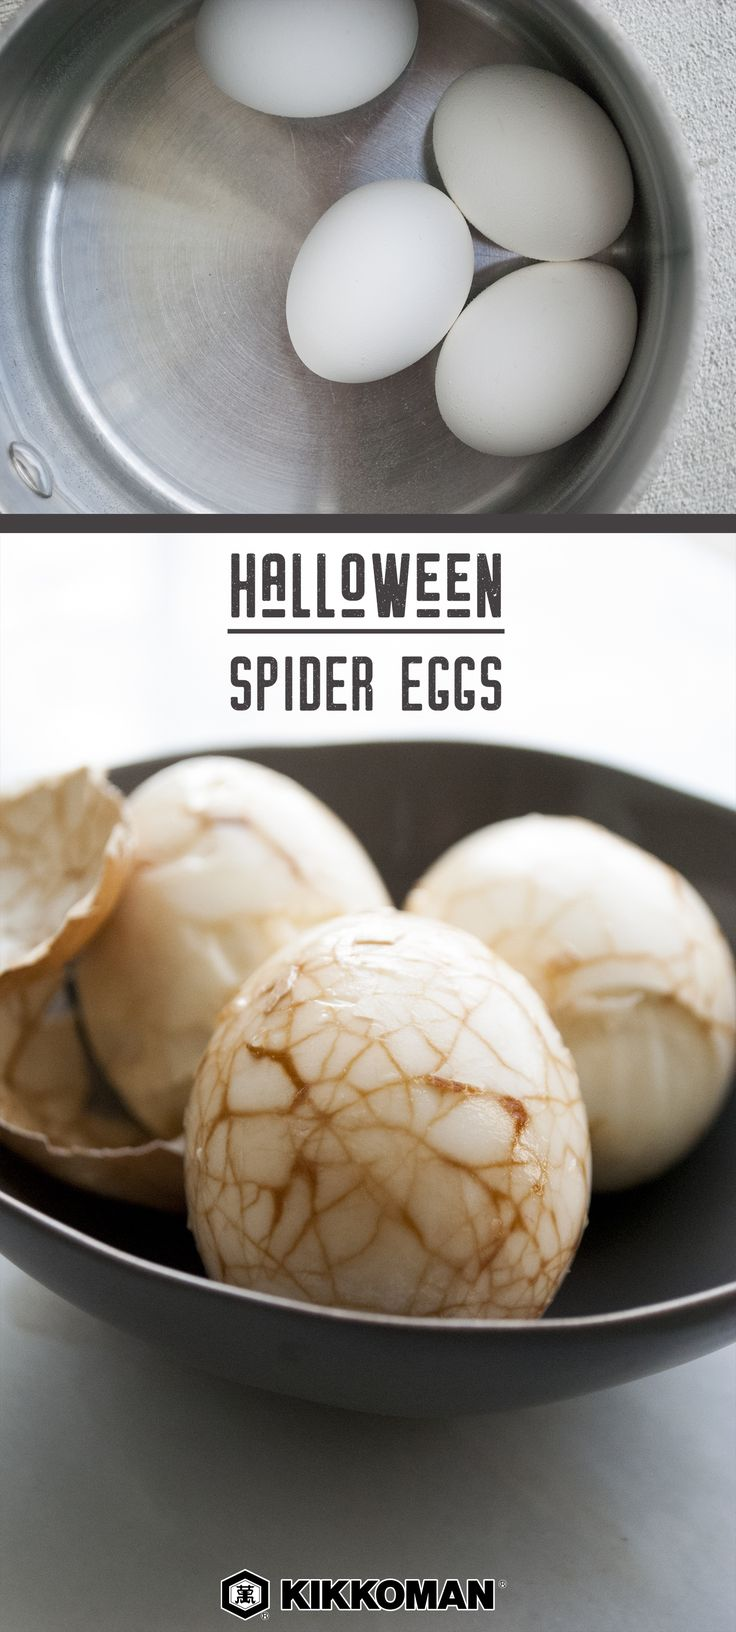 Ideal Halloween Spider Eggs Let Chinese Tea Leaf Eggs double as spider eggs dragon eggs dinosaur eggs or monster eggs this Halloween